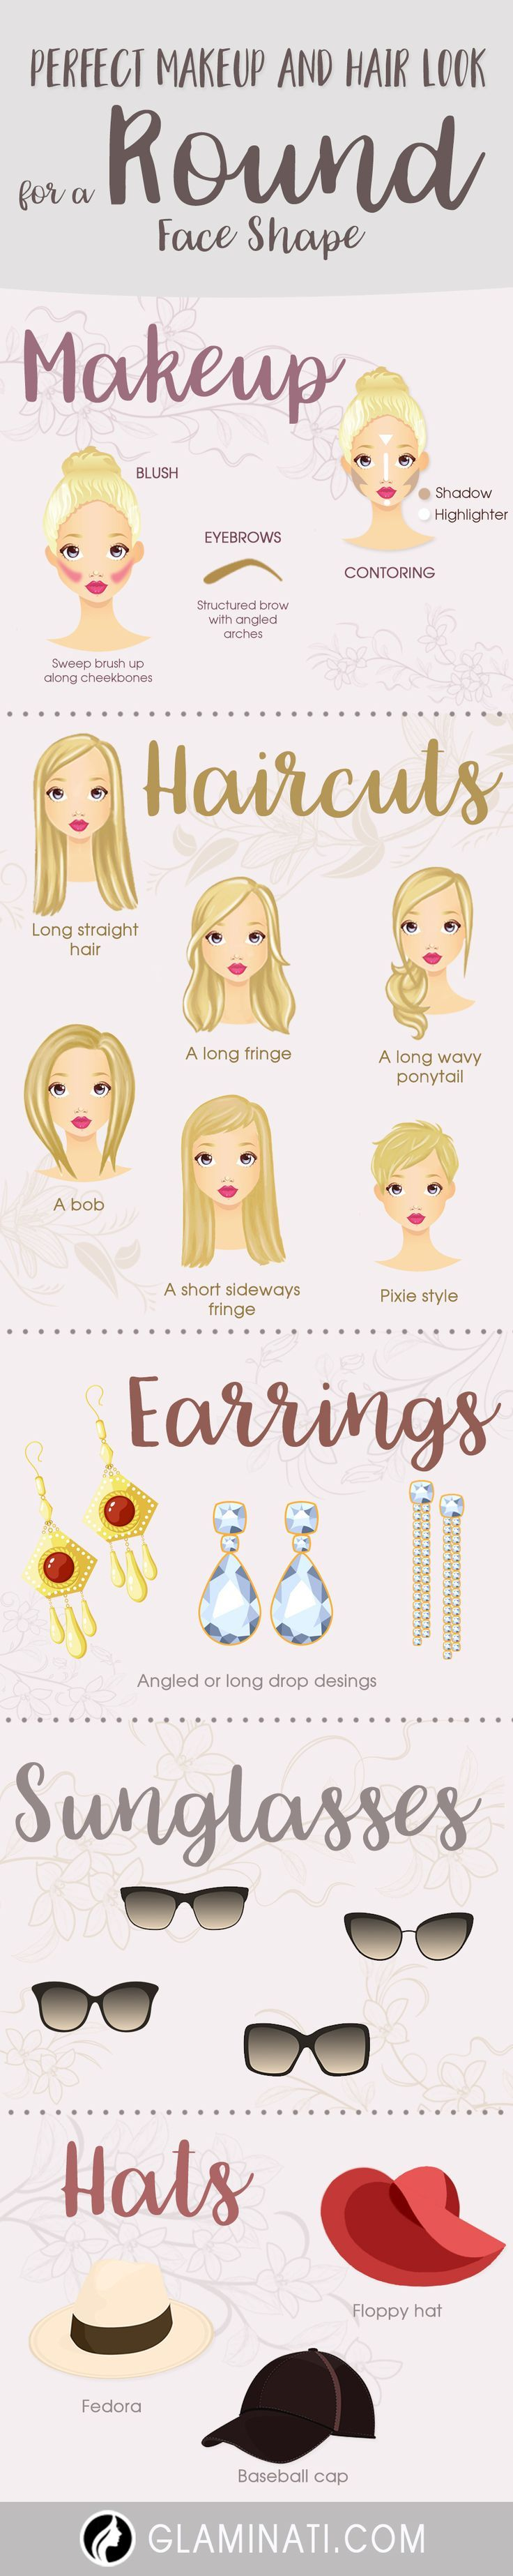 the right face tips shaped to round rectangular on choose how earrings